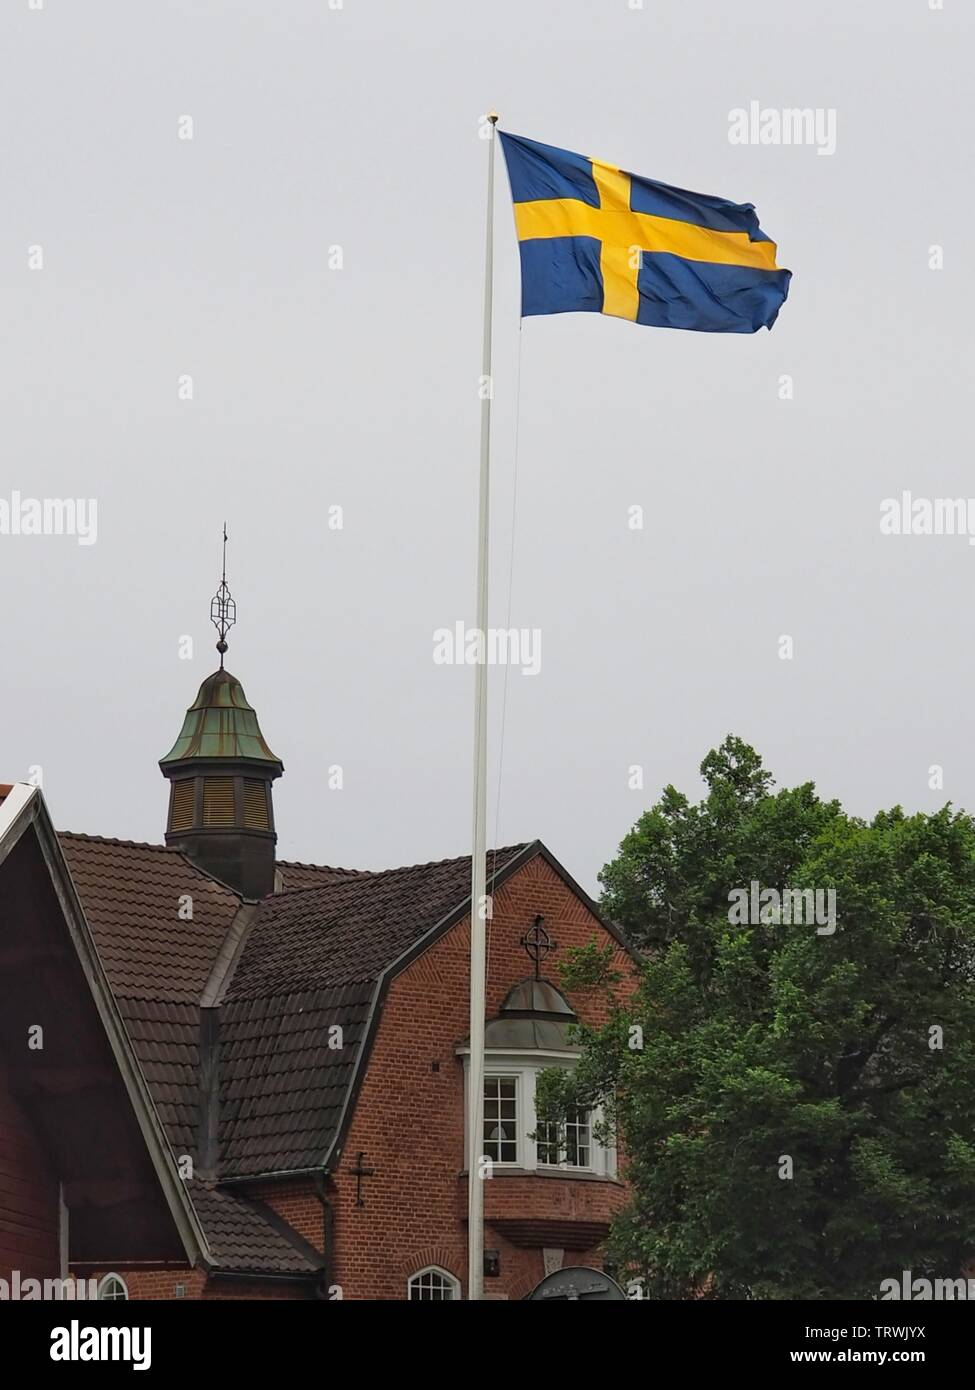 The swedish flag in front of an old building - Stock Image